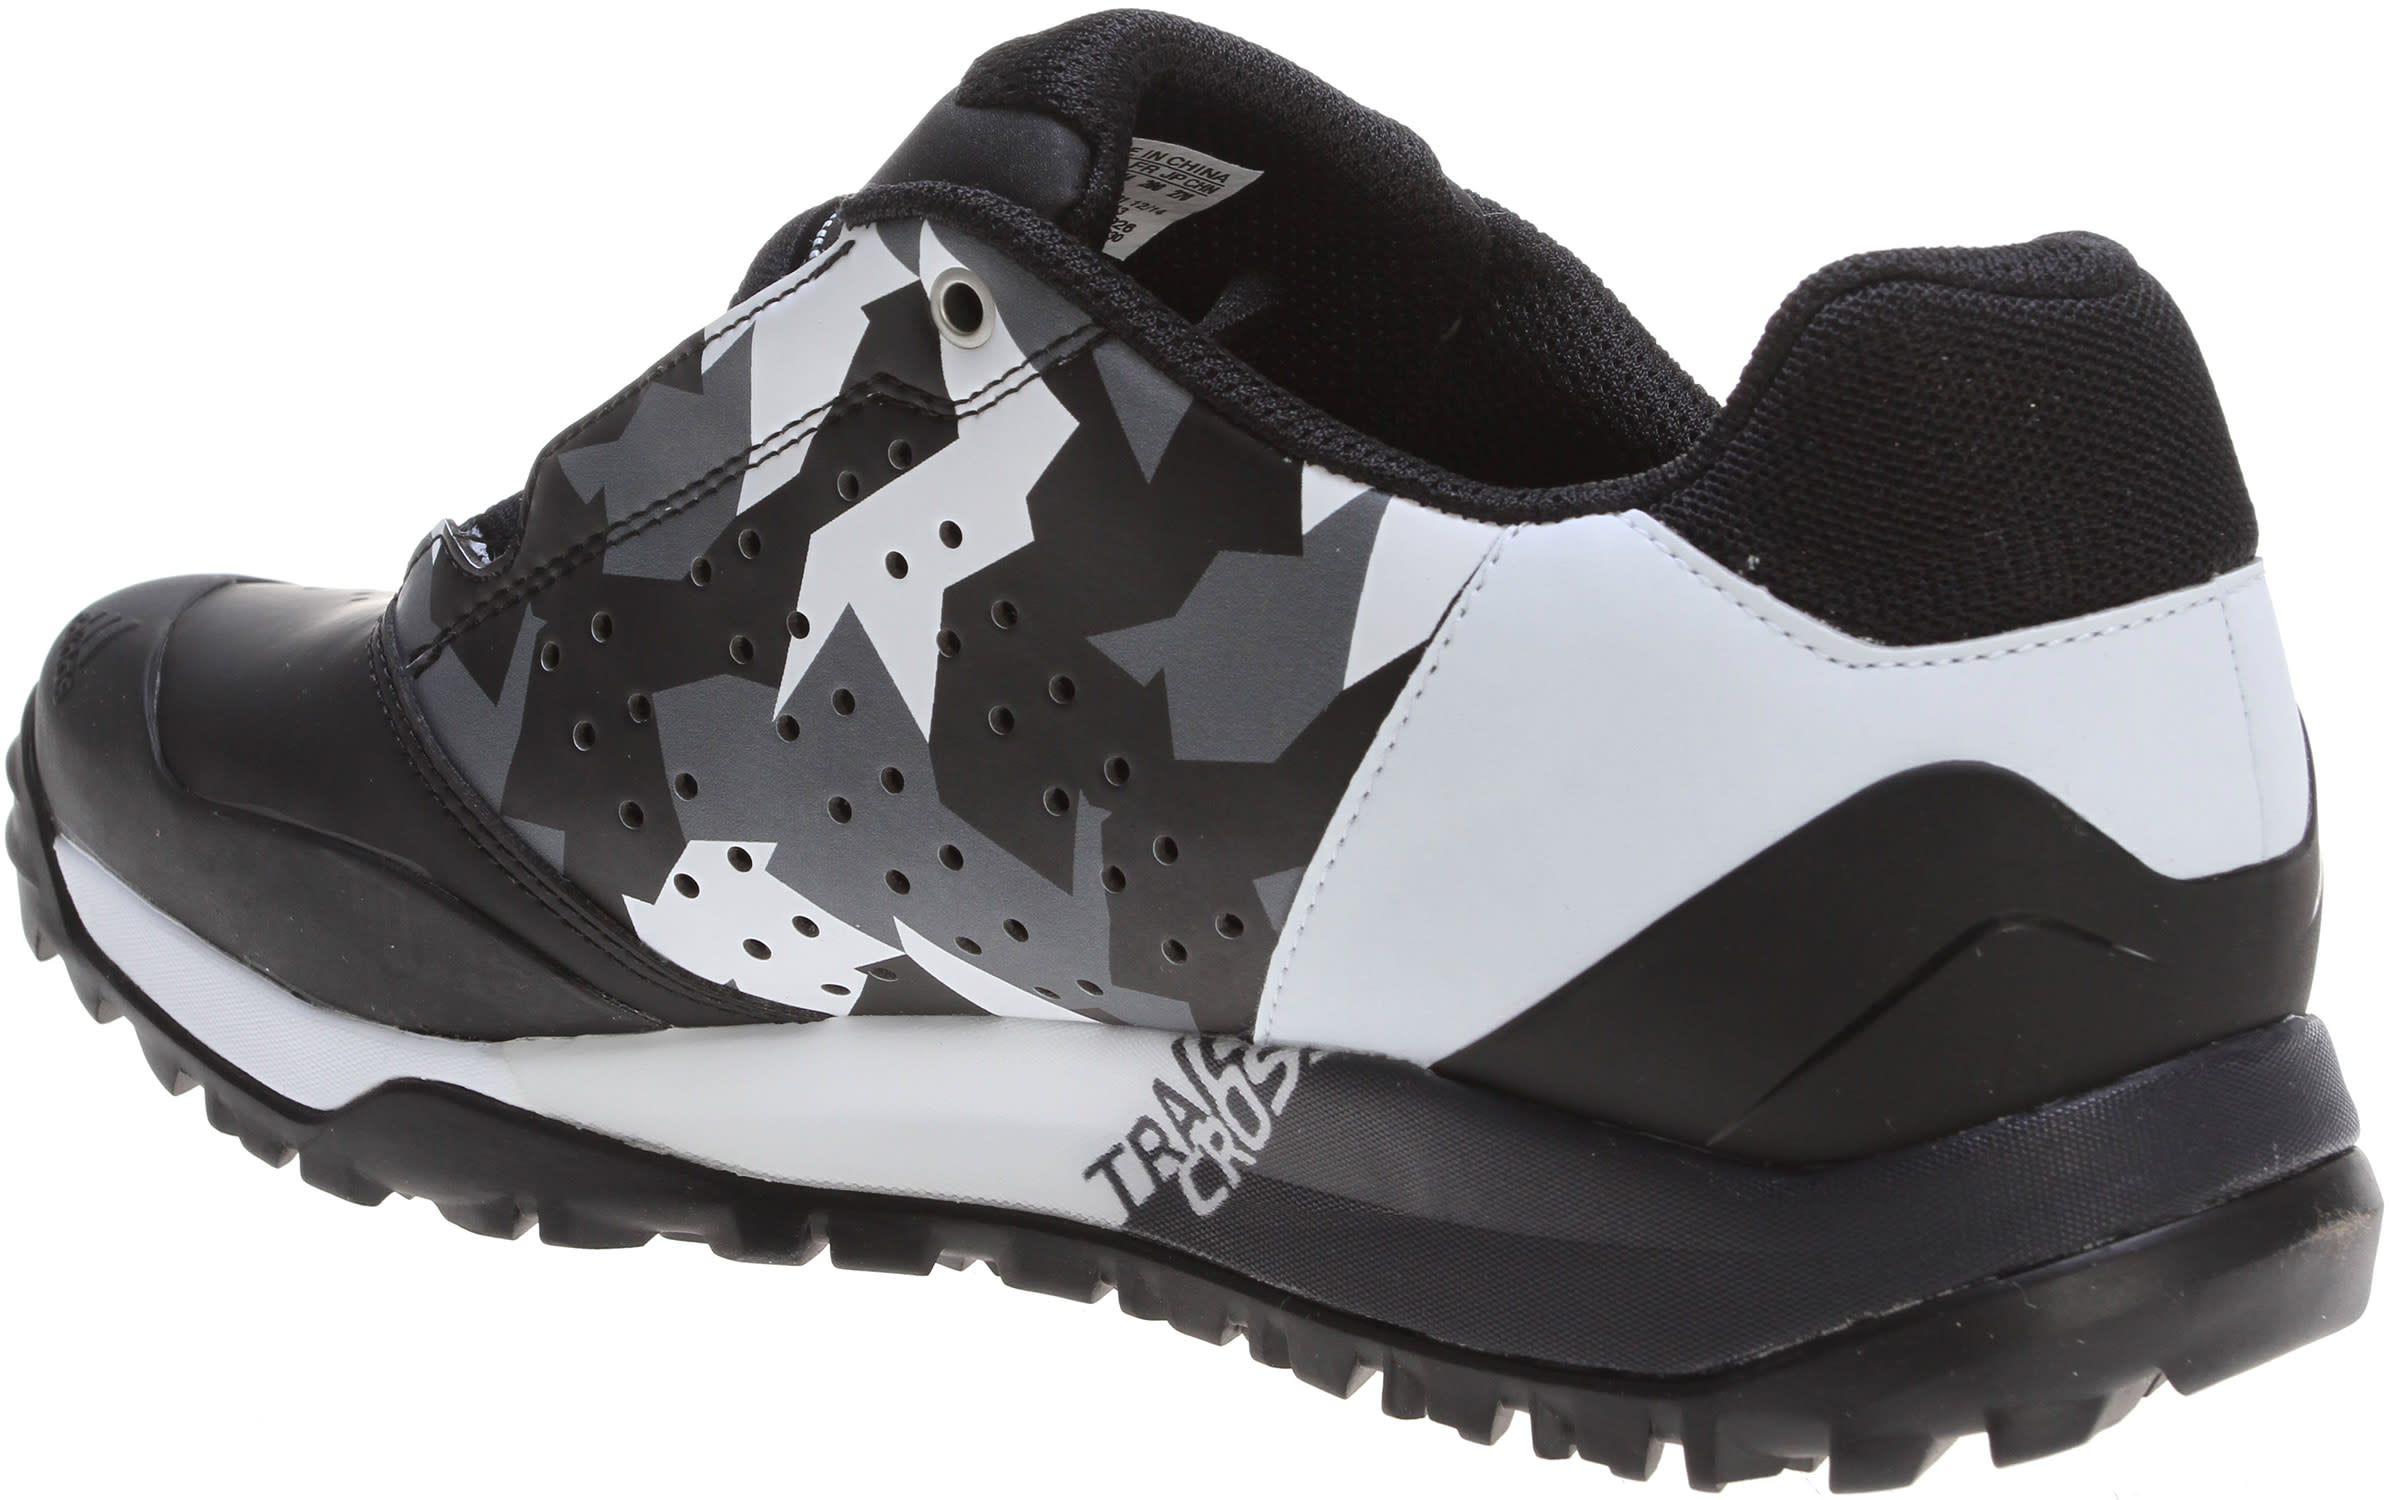 On Sale Adidas Terrex Trail Cross Hiking Shoes up to 50% off